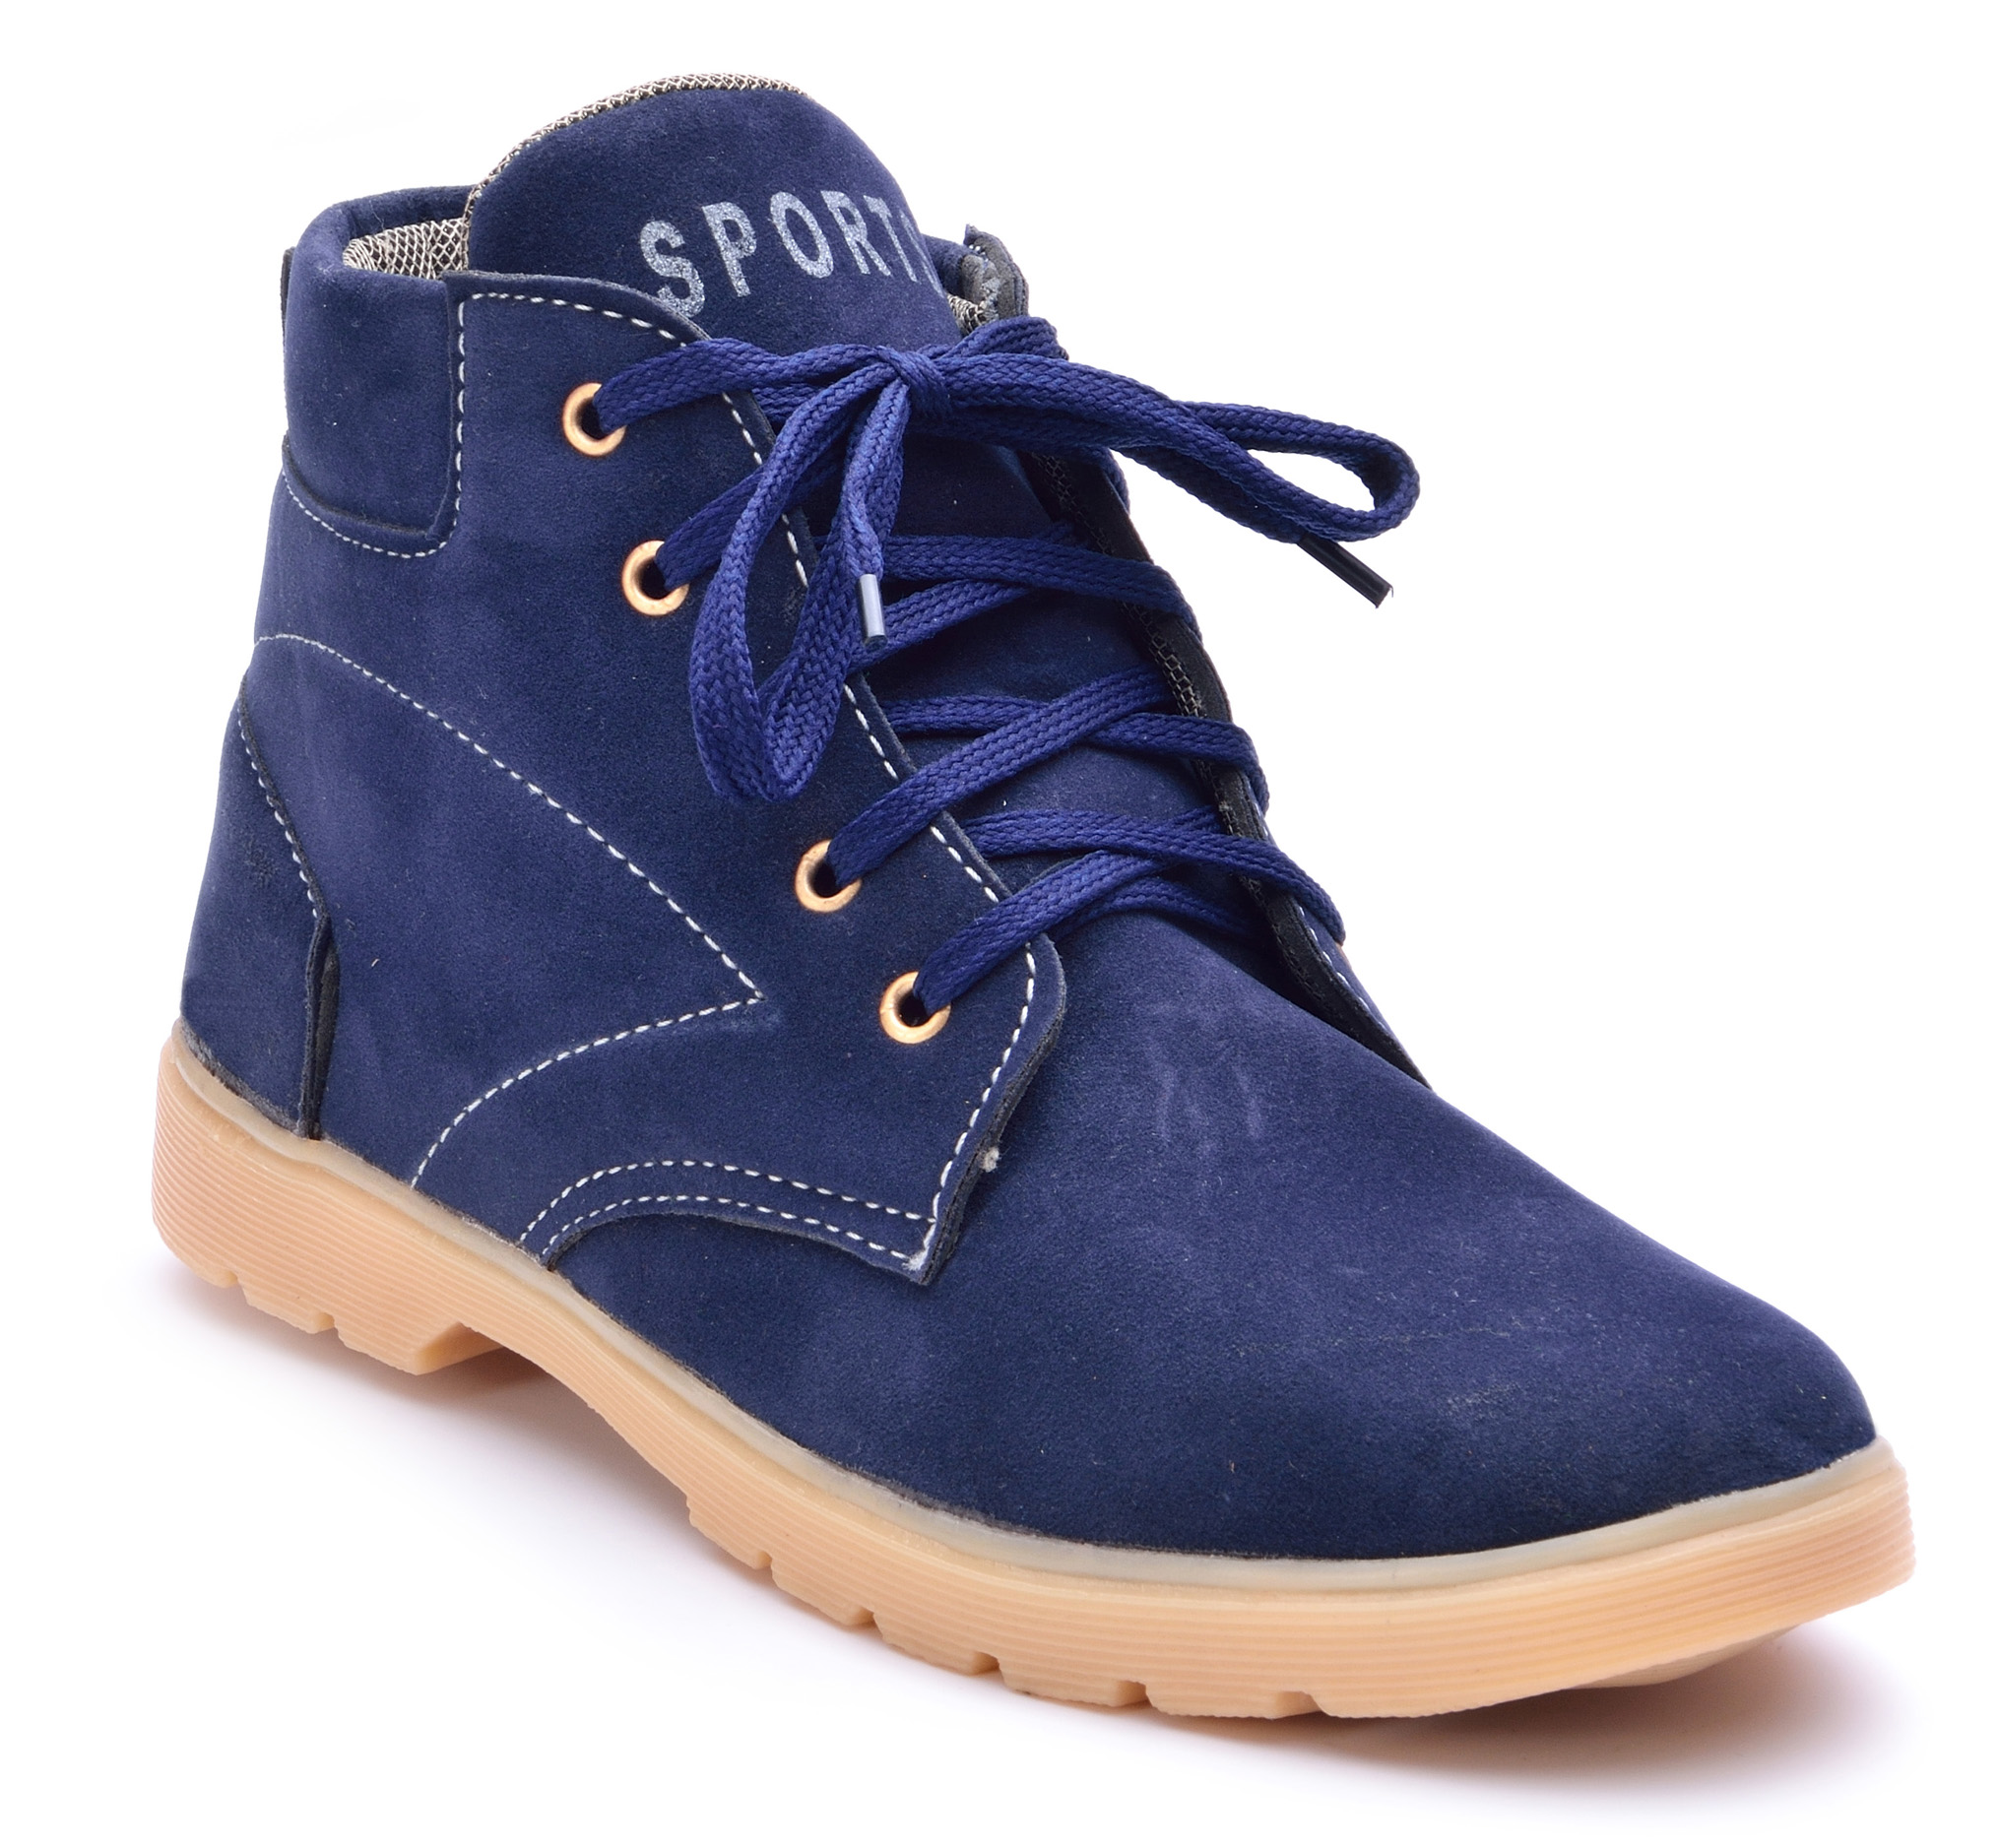 Boysons blue suede ankle length boots